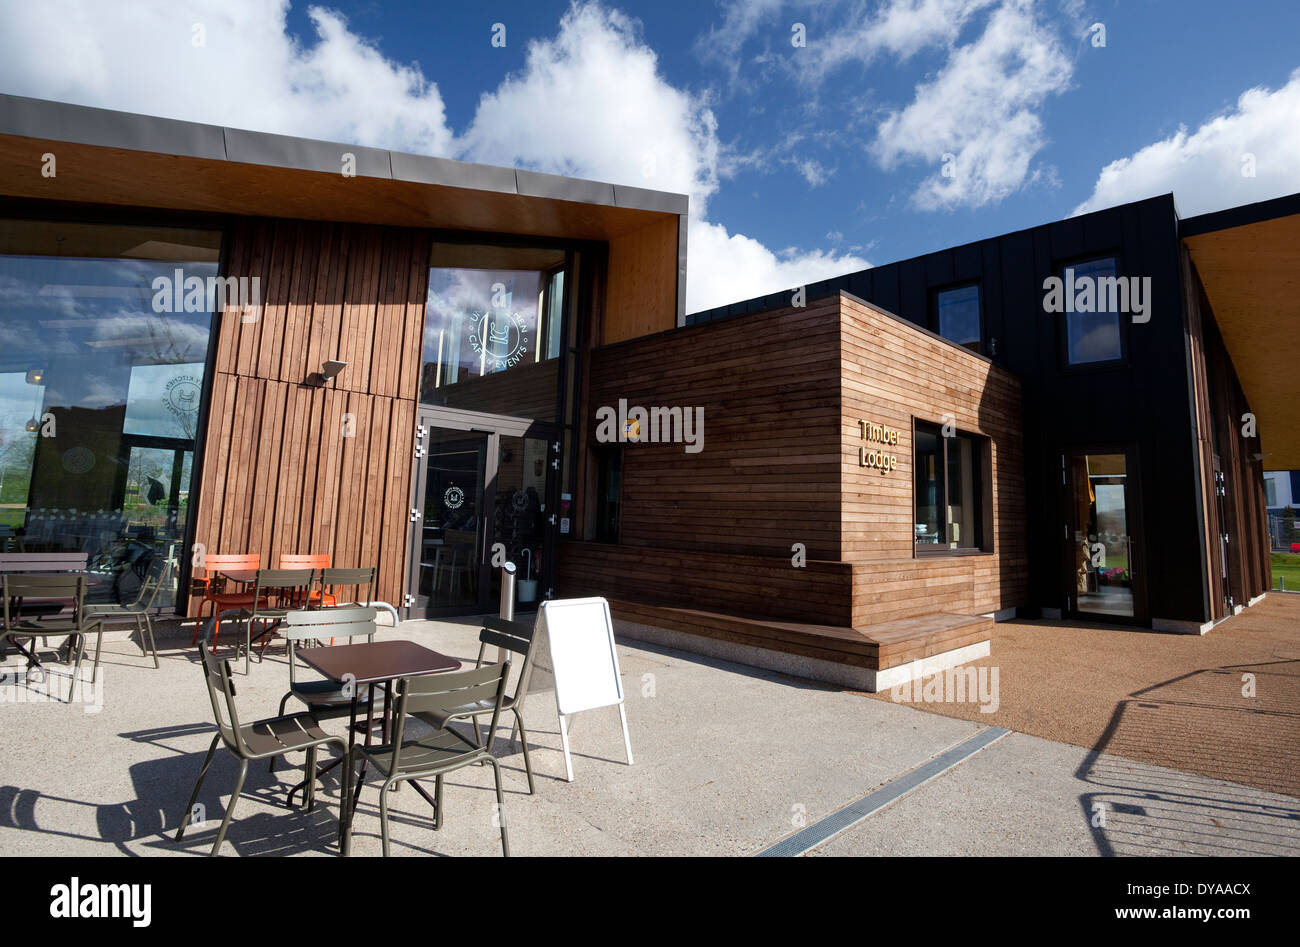 Solar Powered Timber Lodge Cafe In Queen Elizabeth Olympic Park London